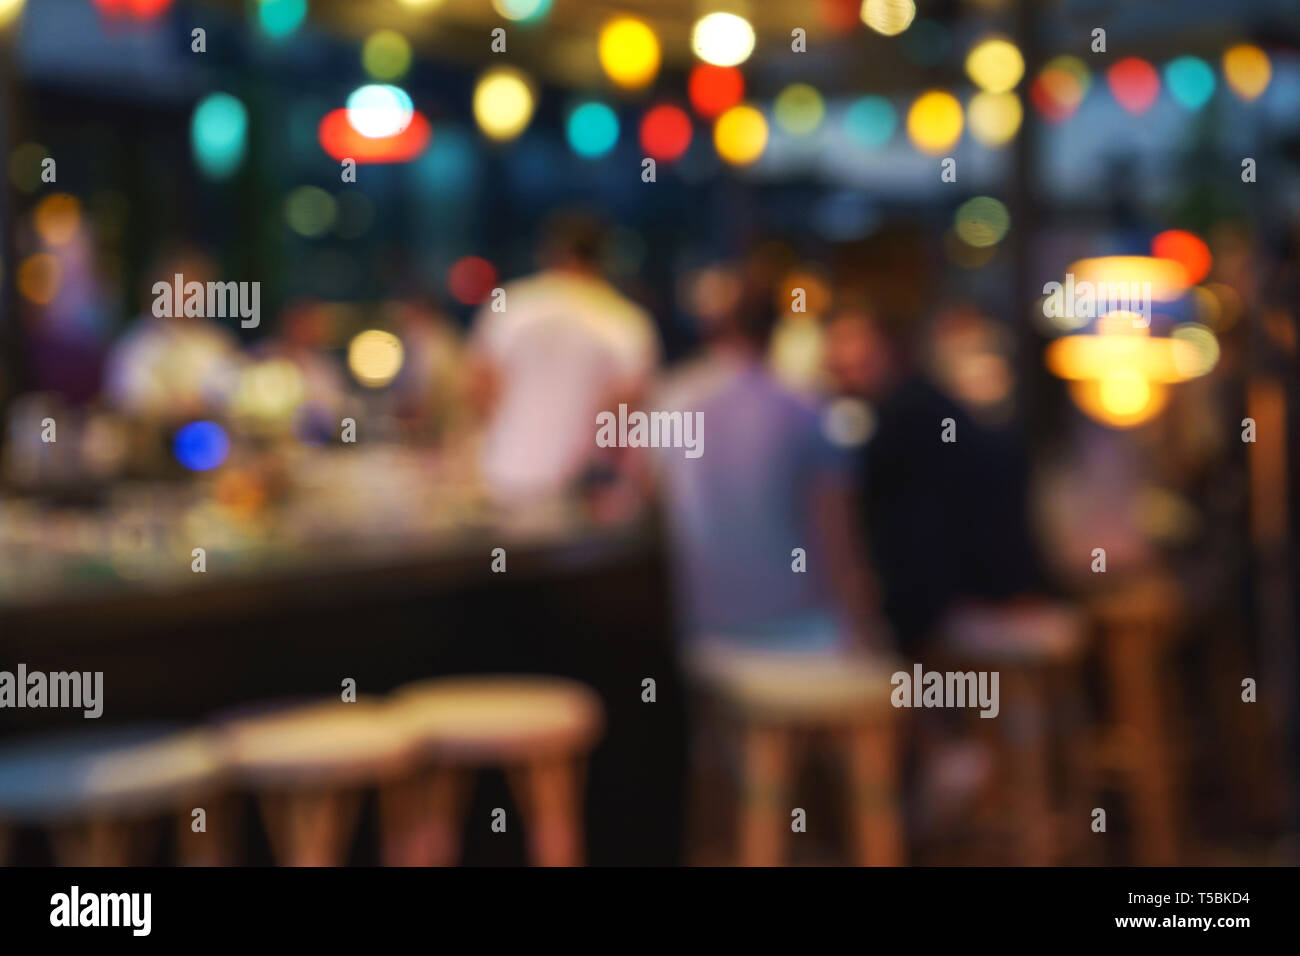 Blurred background of customer sitting at restaurant, bar or night club, with bokeh. - Stock Image